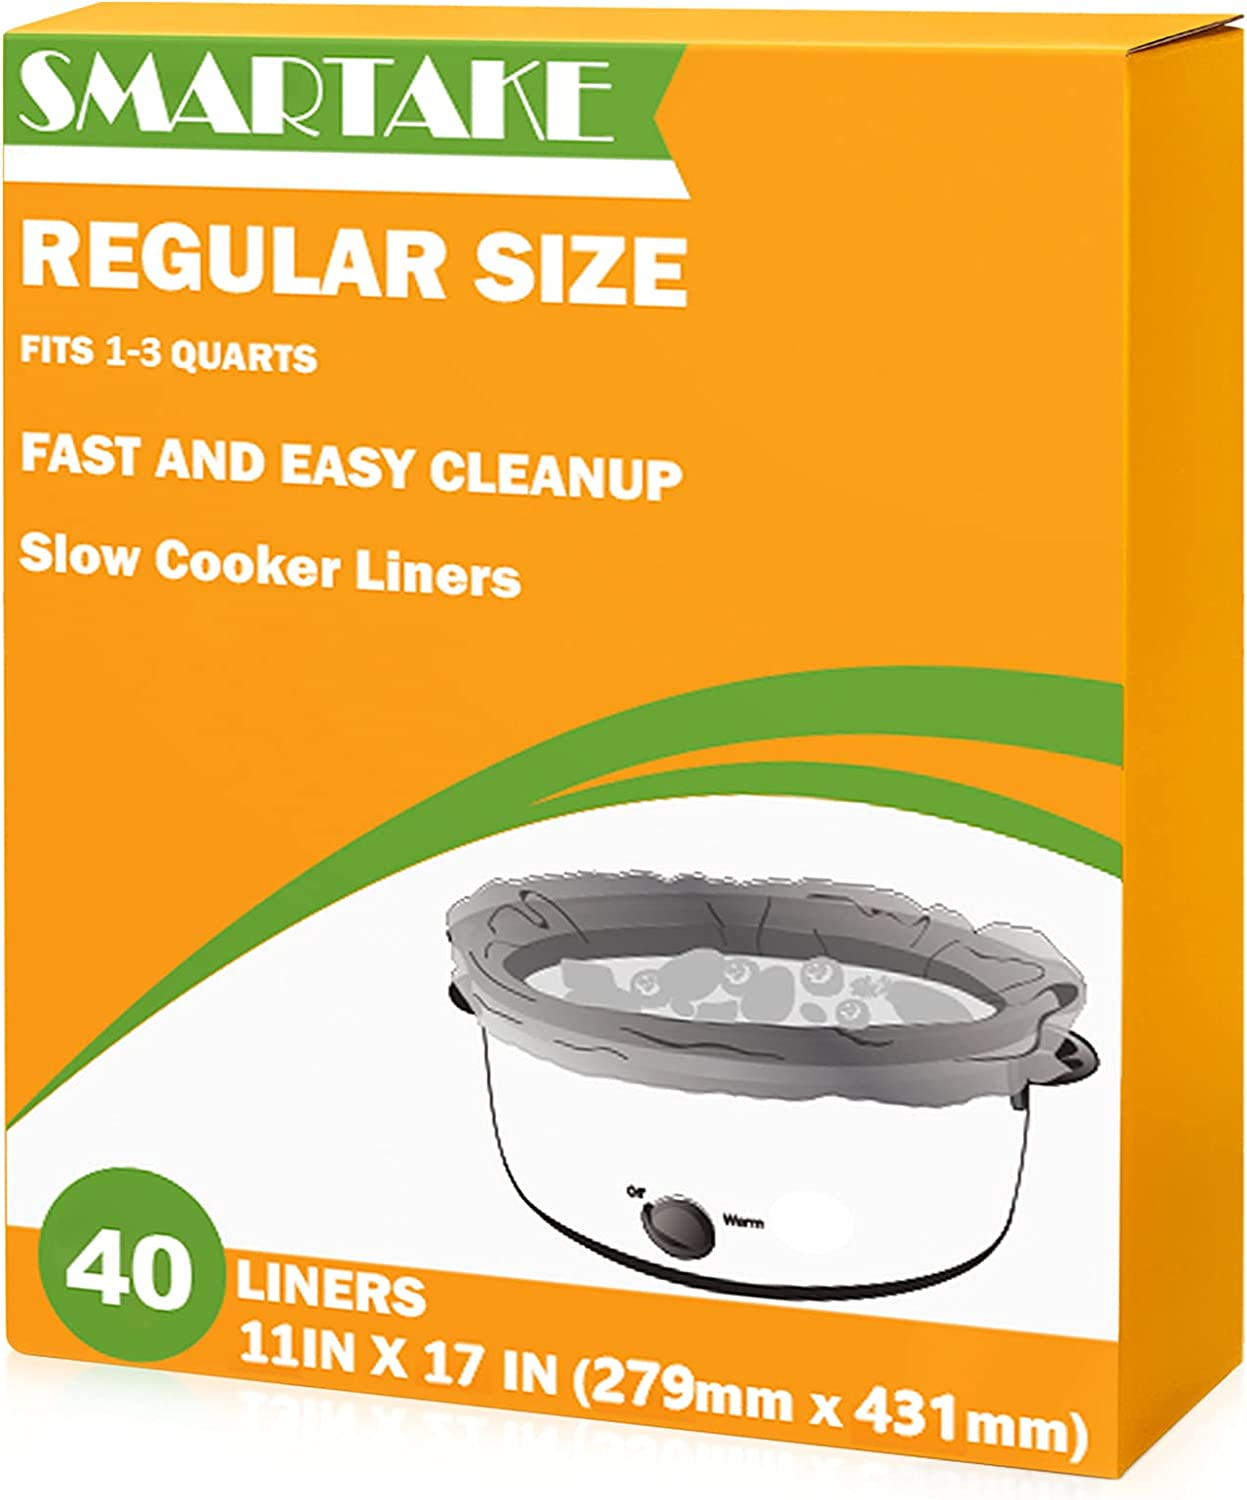 SMARTAKE Slow Cooker Liners, 11 × 17 Inches Disposable Cooking Bags, Easy Clean-Up Plastic Bags, Fit 1QT to 3QT, for Slow Cooker, Crockpot, Aluminum Cooking Trays, Pans, 1 Pack (40 Liners)